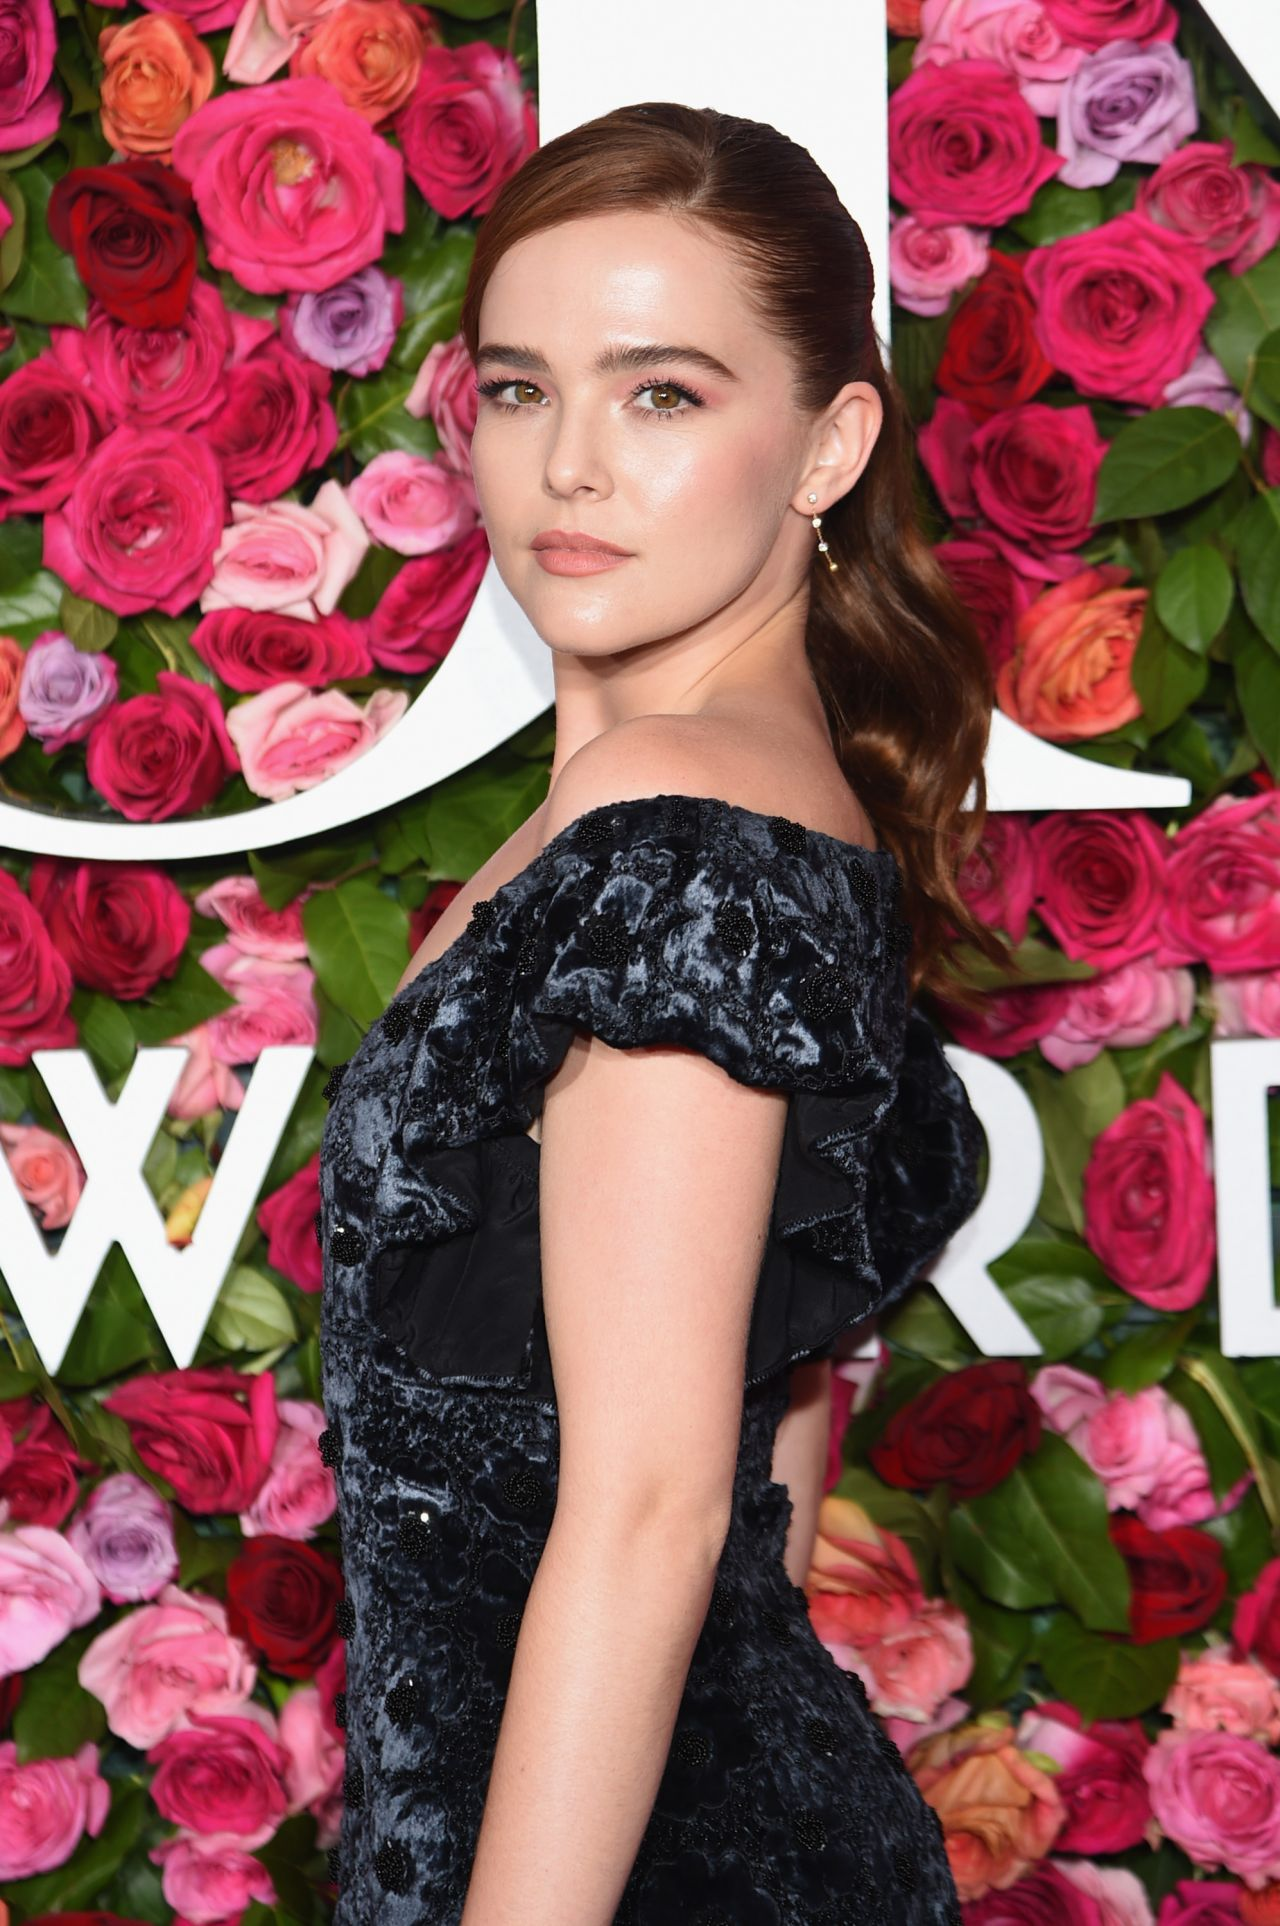 https://celebmafia.com/wp-content/uploads/2018/06/zoey-deutch-2018-tony-awards-in-nyc-0.jpg